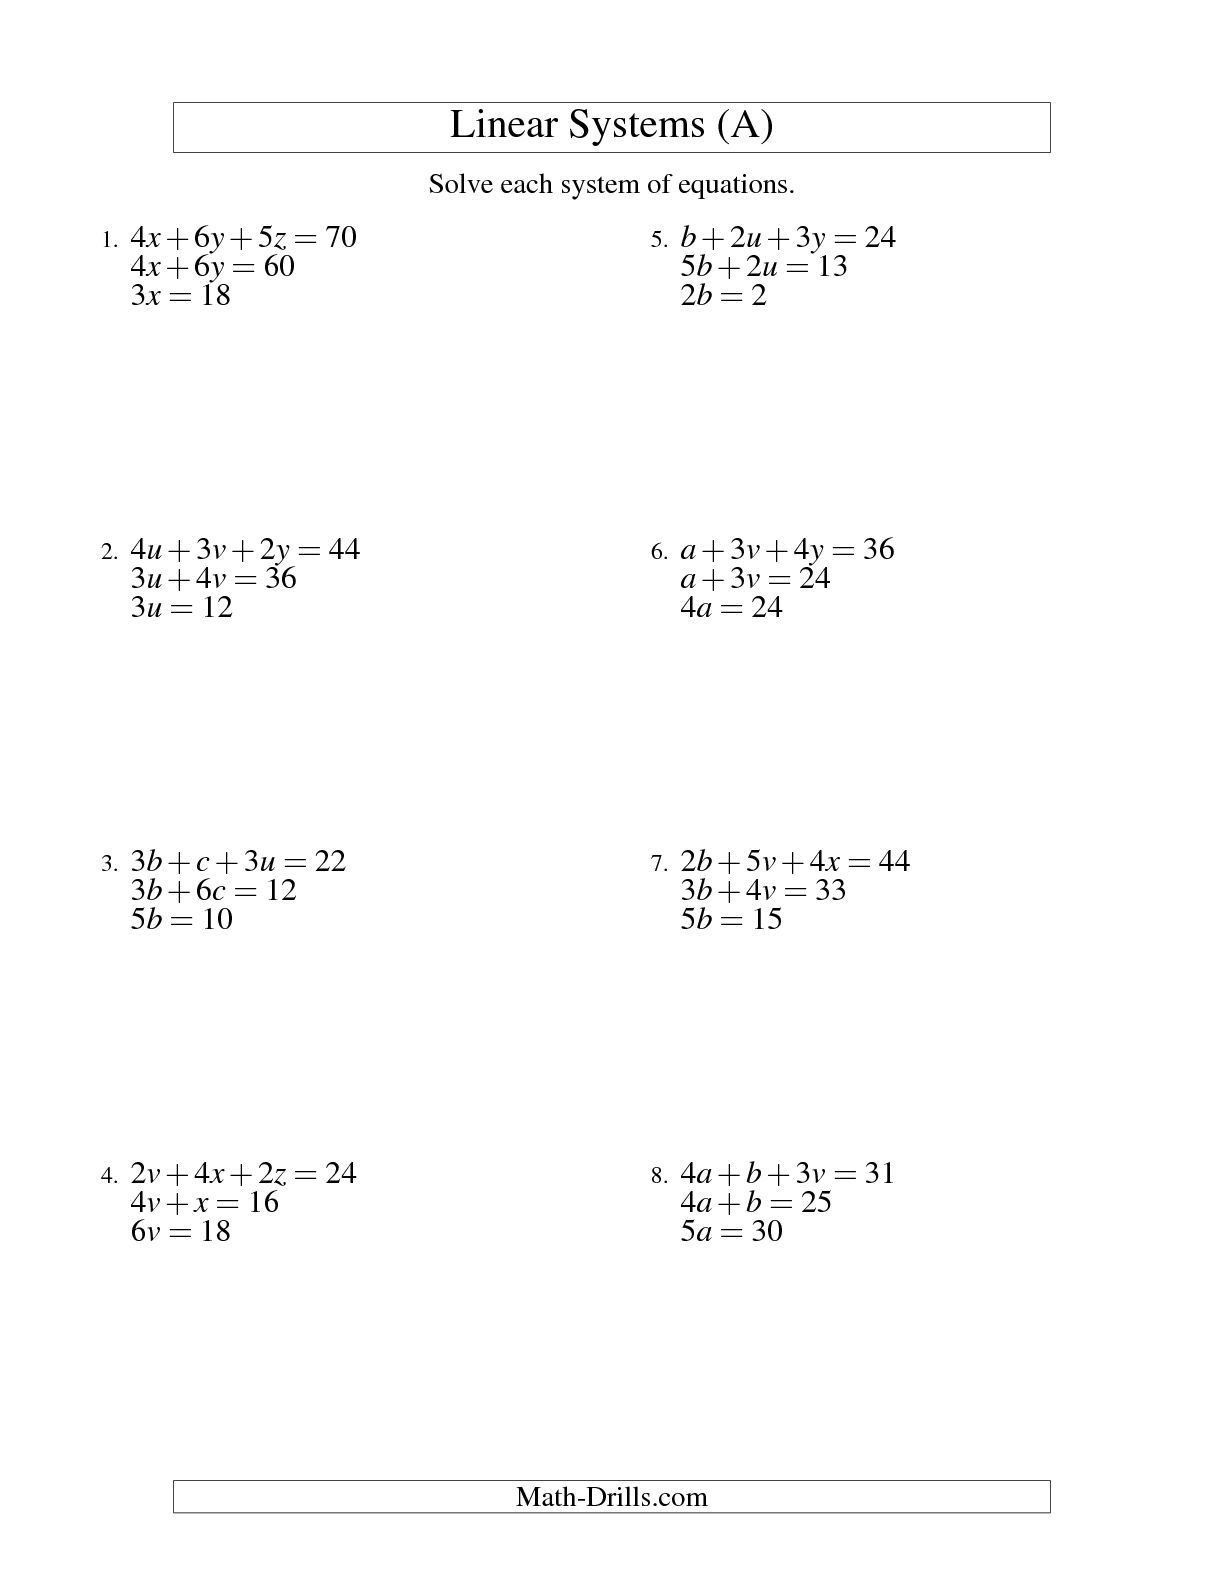 Solving Equations And Inequalities Worksheet Solving Systems Linear Equations A Writing Linear Equations Graphing Linear Inequalities Graphing Linear Equations